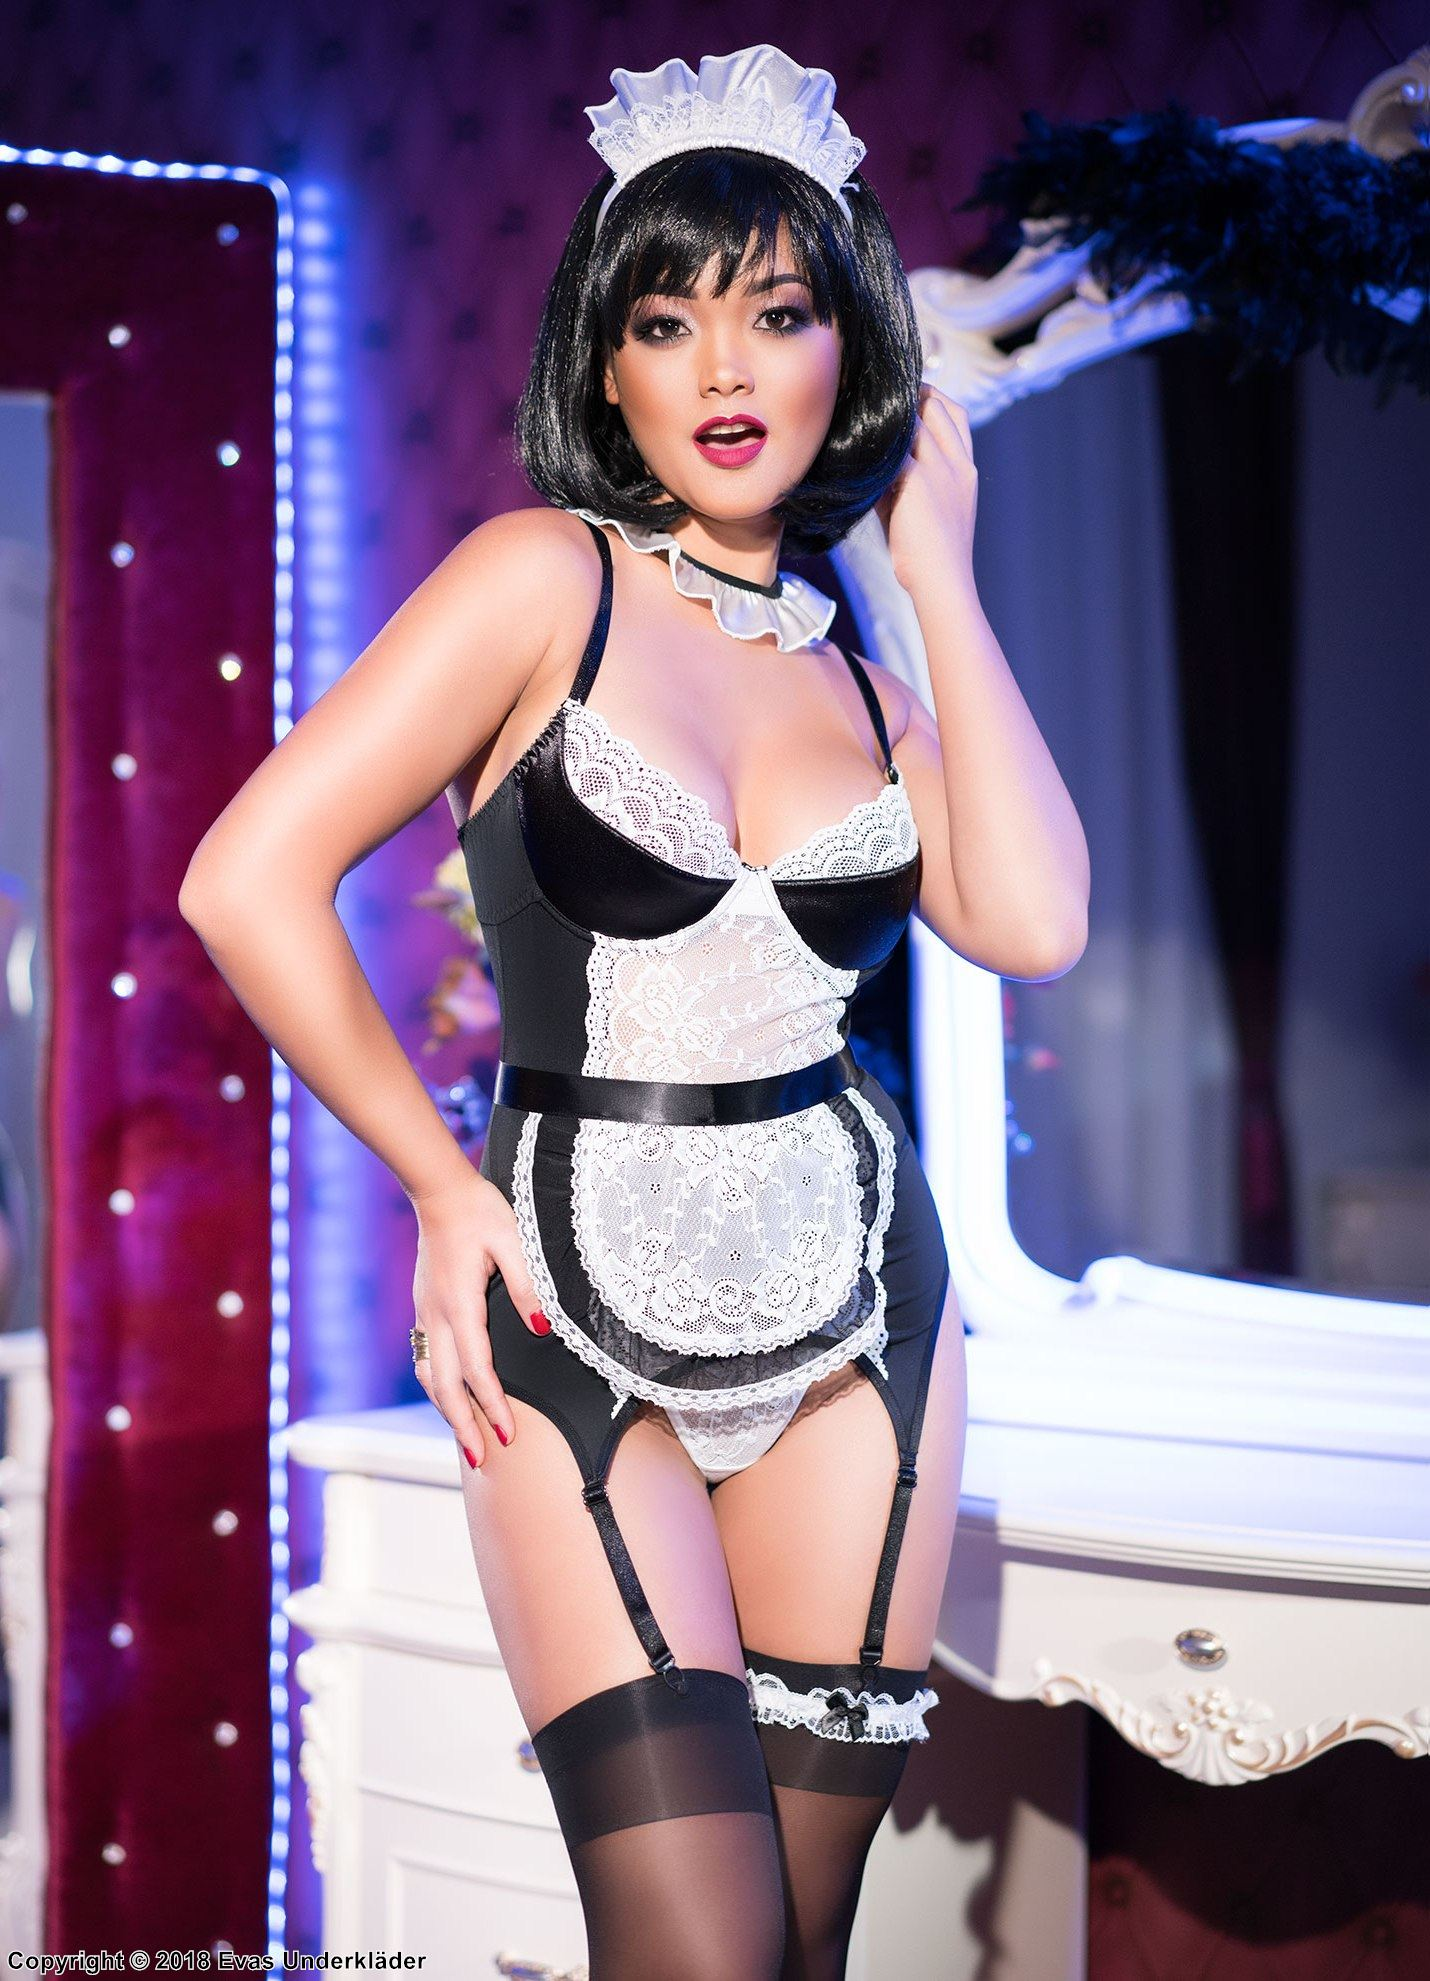 French maid, bustier